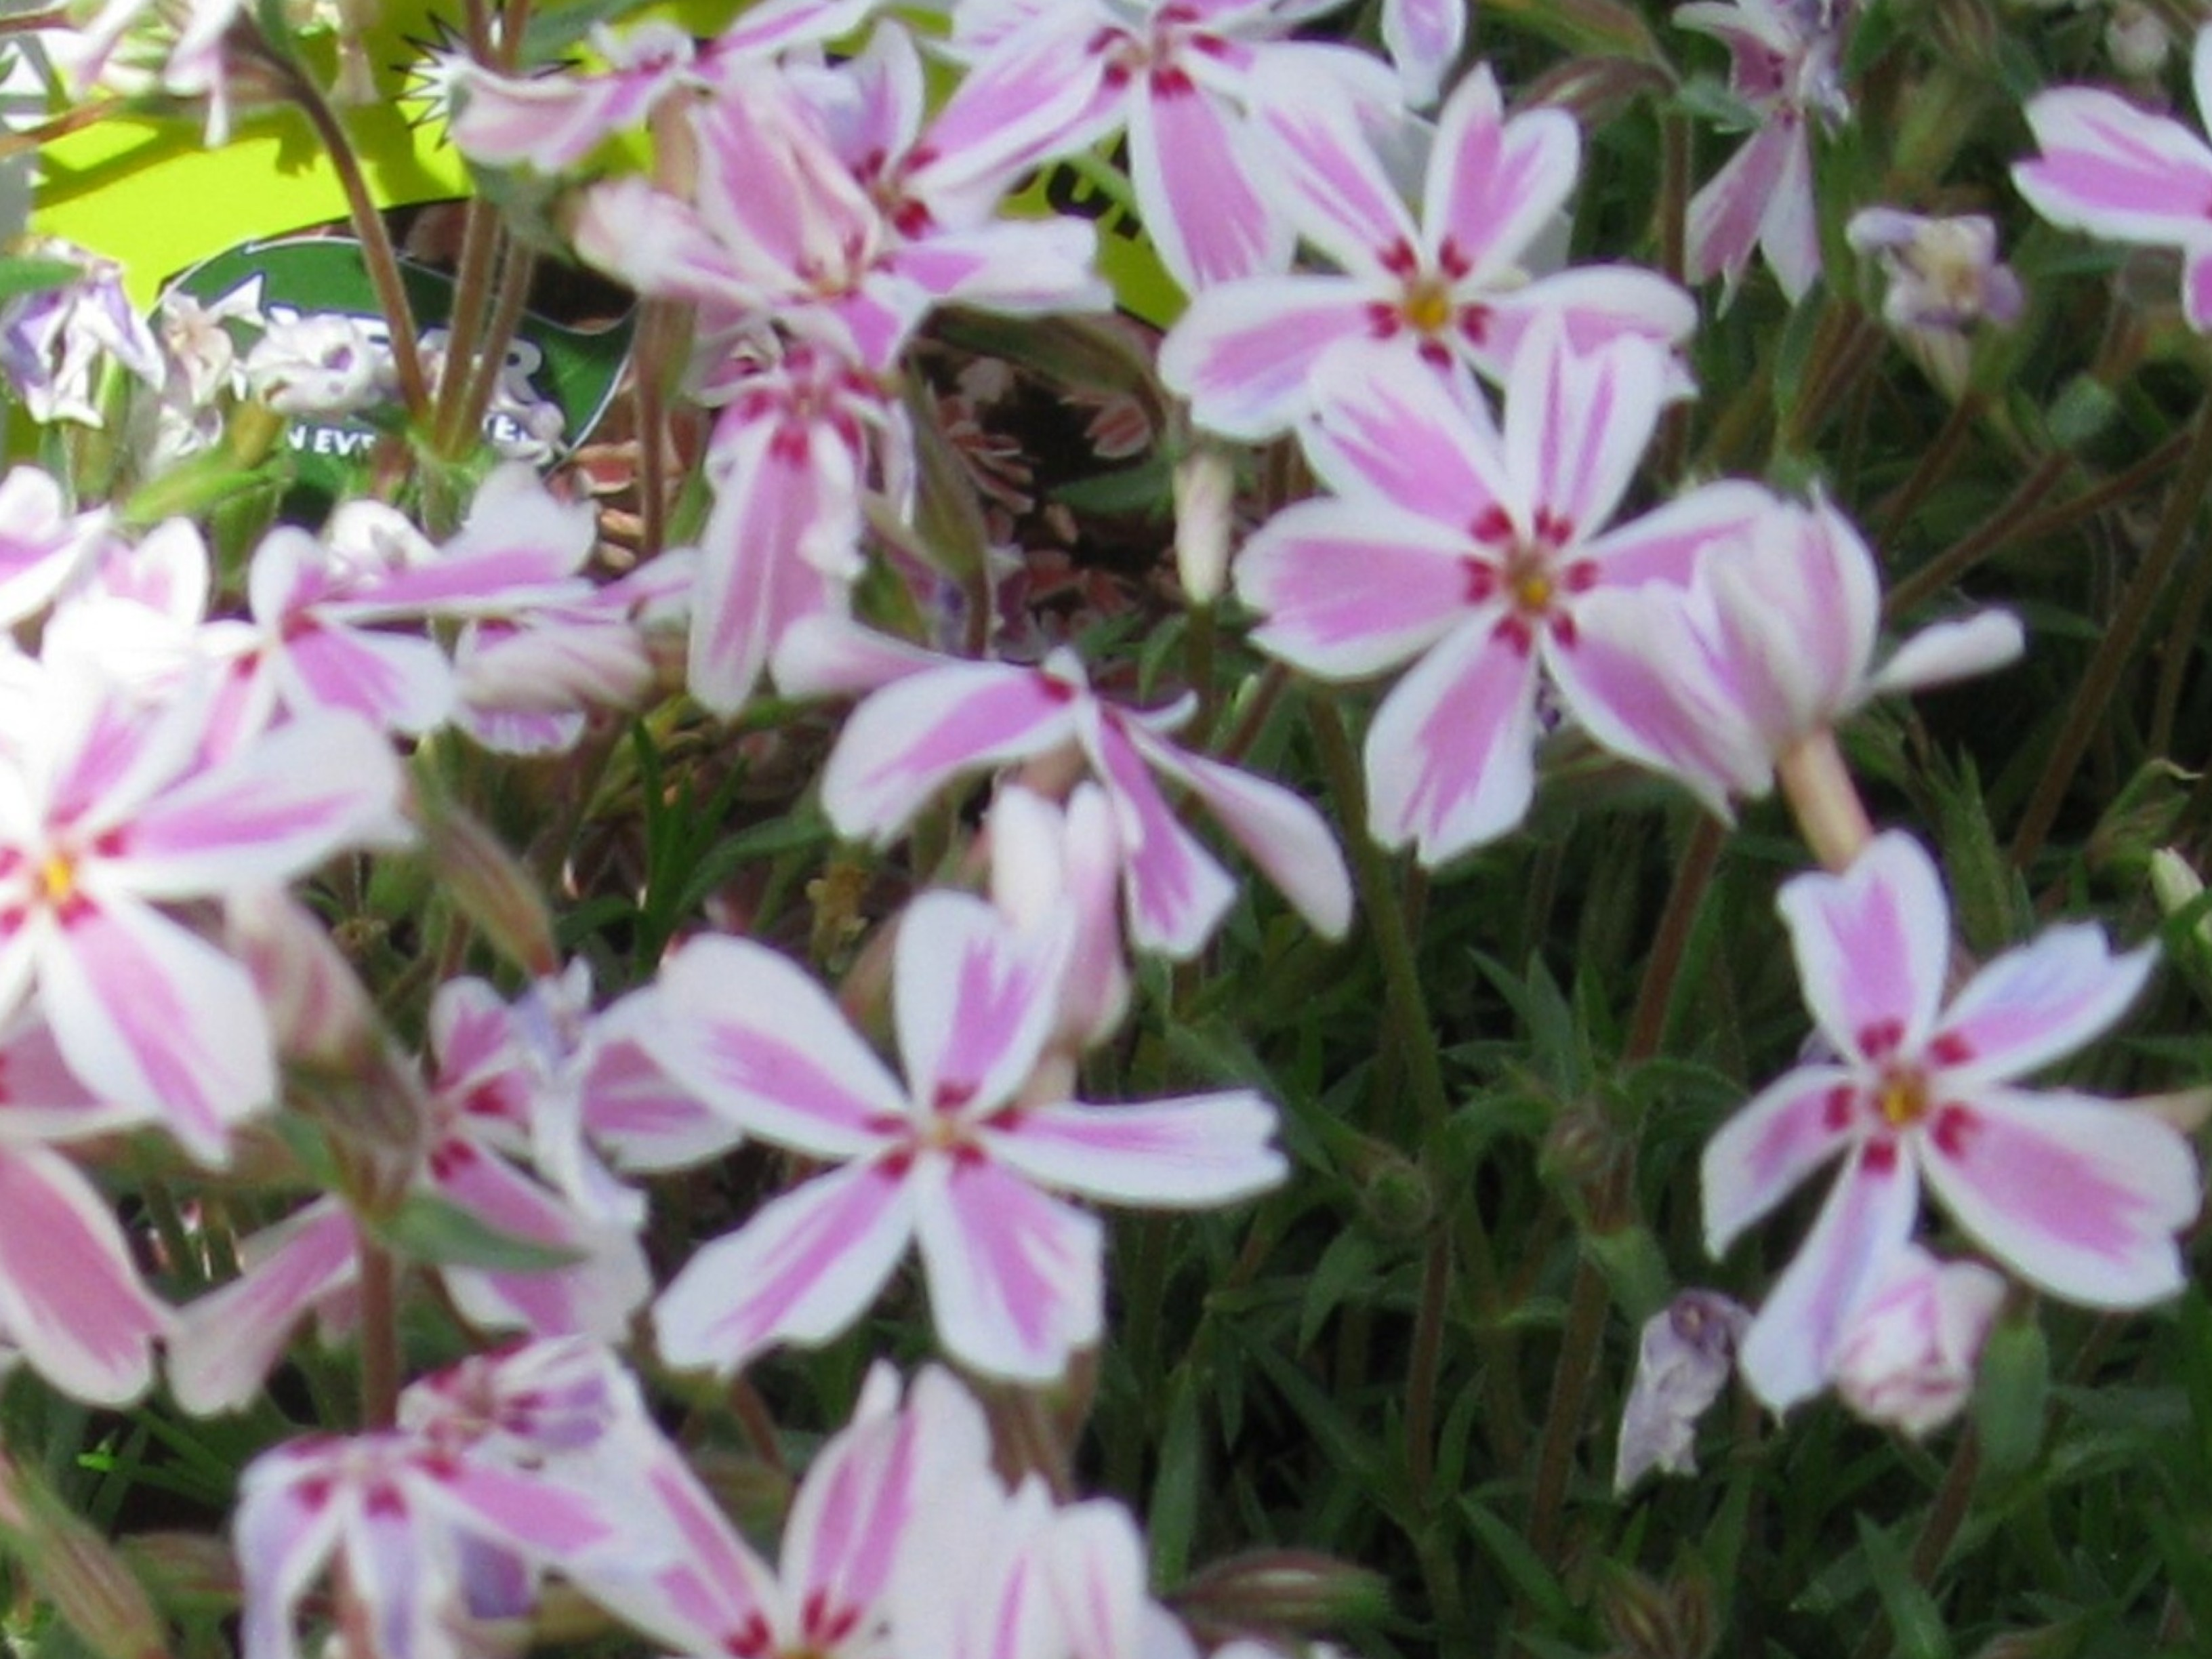 Phlox subulata 'Candy Stripe' / Phlox subulata 'Candy Stripe'